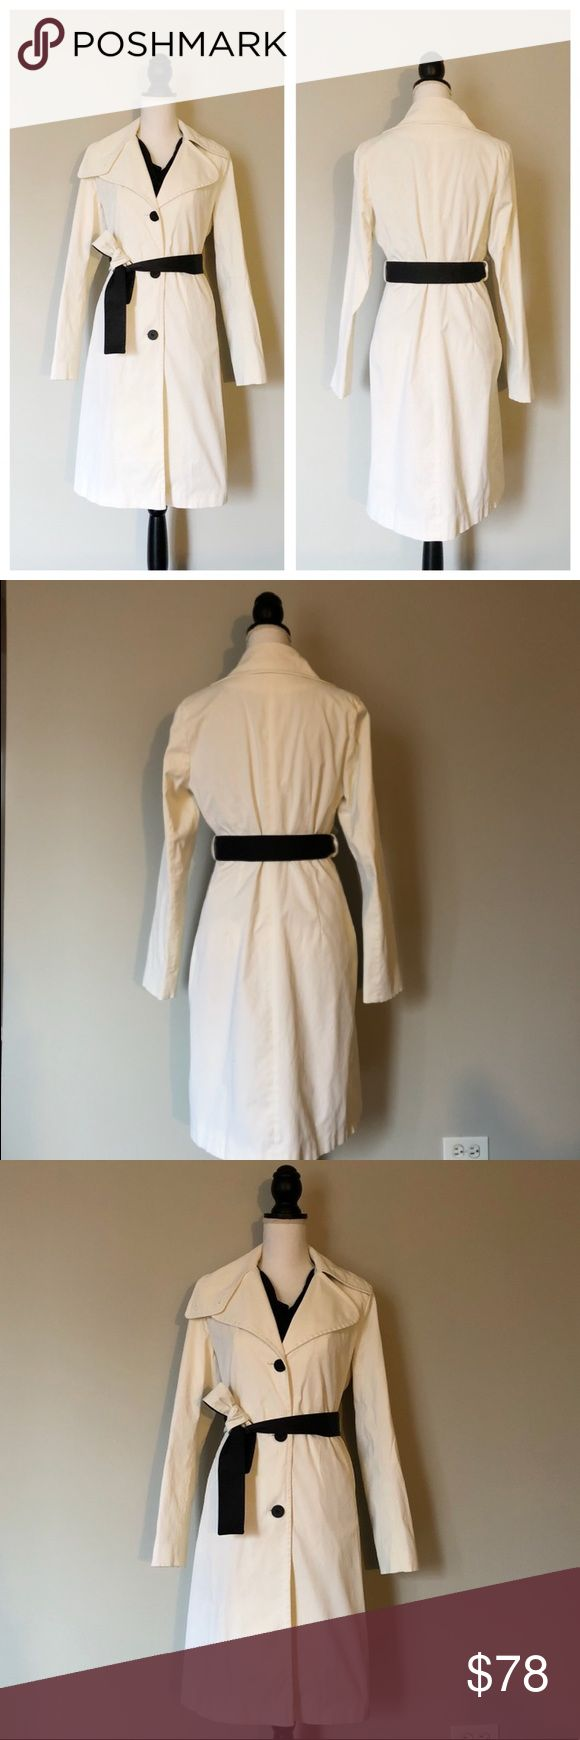 """DKNY Trench Coat This beautiful white DKNY trench coat is definition of classic! This is the perfect addition to any wardrobe 🔹color: bright white  🔹removable and reversible belt (1 side black, 1 side white) 🔹pockets 🔹size: Small  🔹sleeve length: approx. 24""""  body length (top to bottom): approx. 38.5""""  🔹59% cotton, 38% nylon, 3% spandex  Lining: 100% polyester  🔹condition: NWOT Dkny Jackets & Coats Trench Coats"""